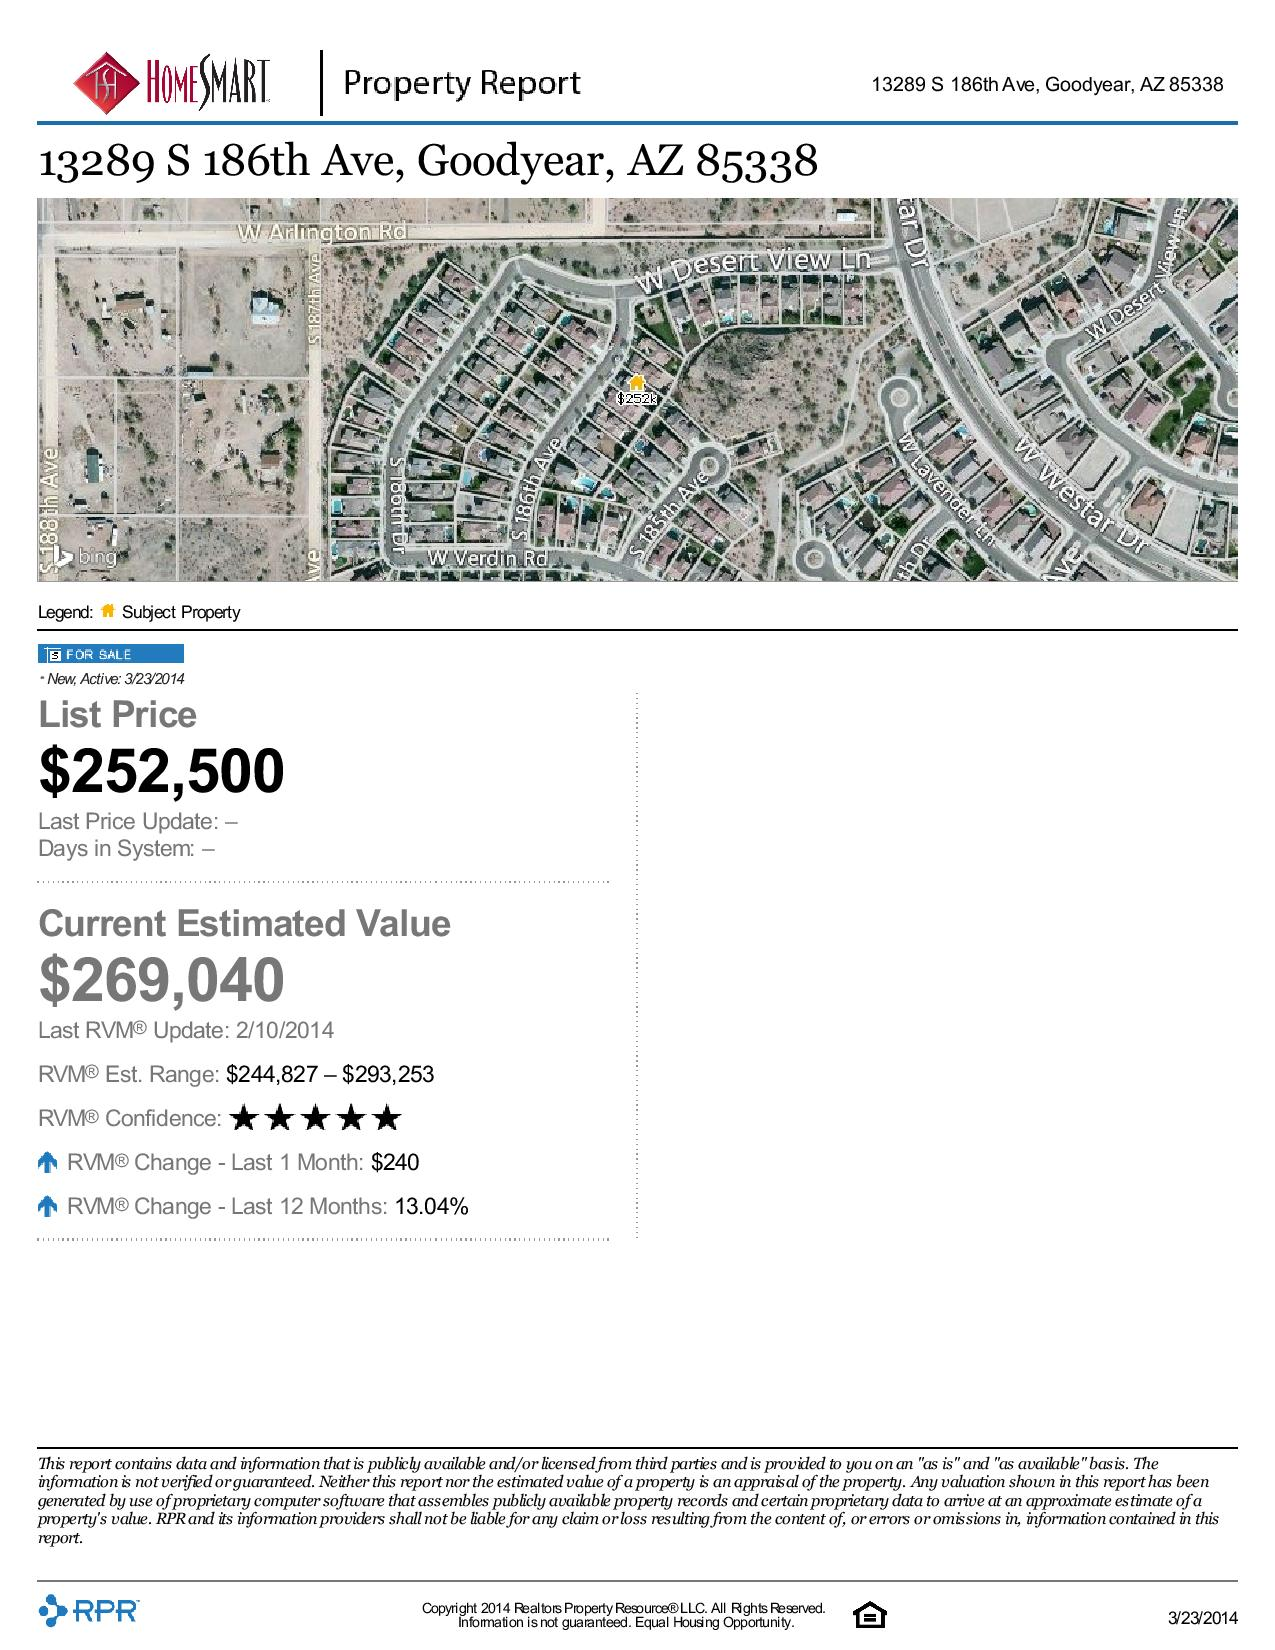 13289-S-186th-Ave-Goodyear-AZ-85338-page-002